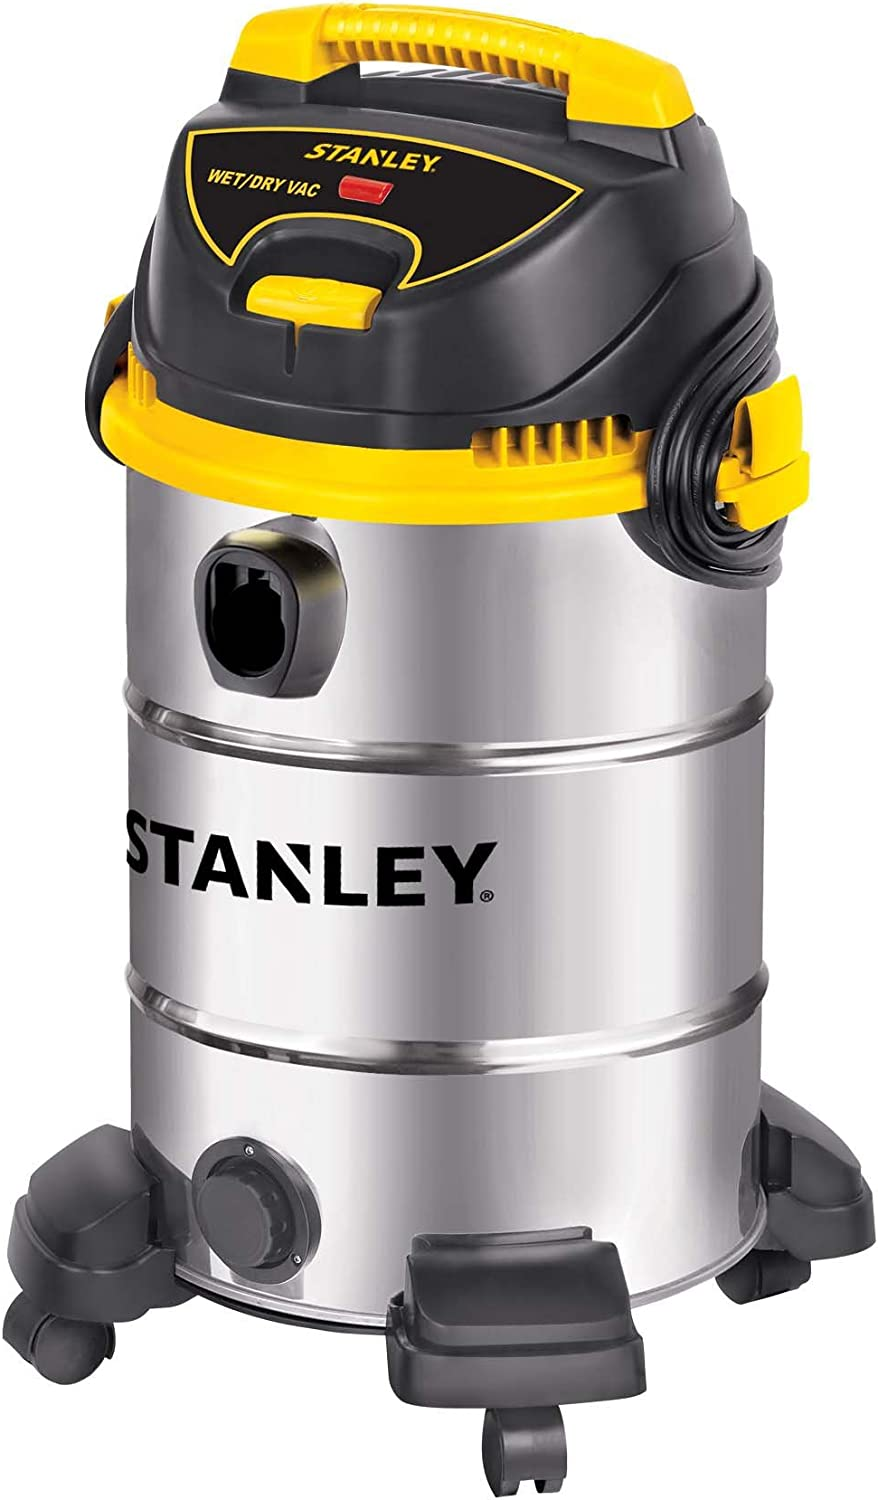 Stanley Wet Dry Vacuum, 8 Gallon, 4.5 Horsepower, Stainless Steel Tank